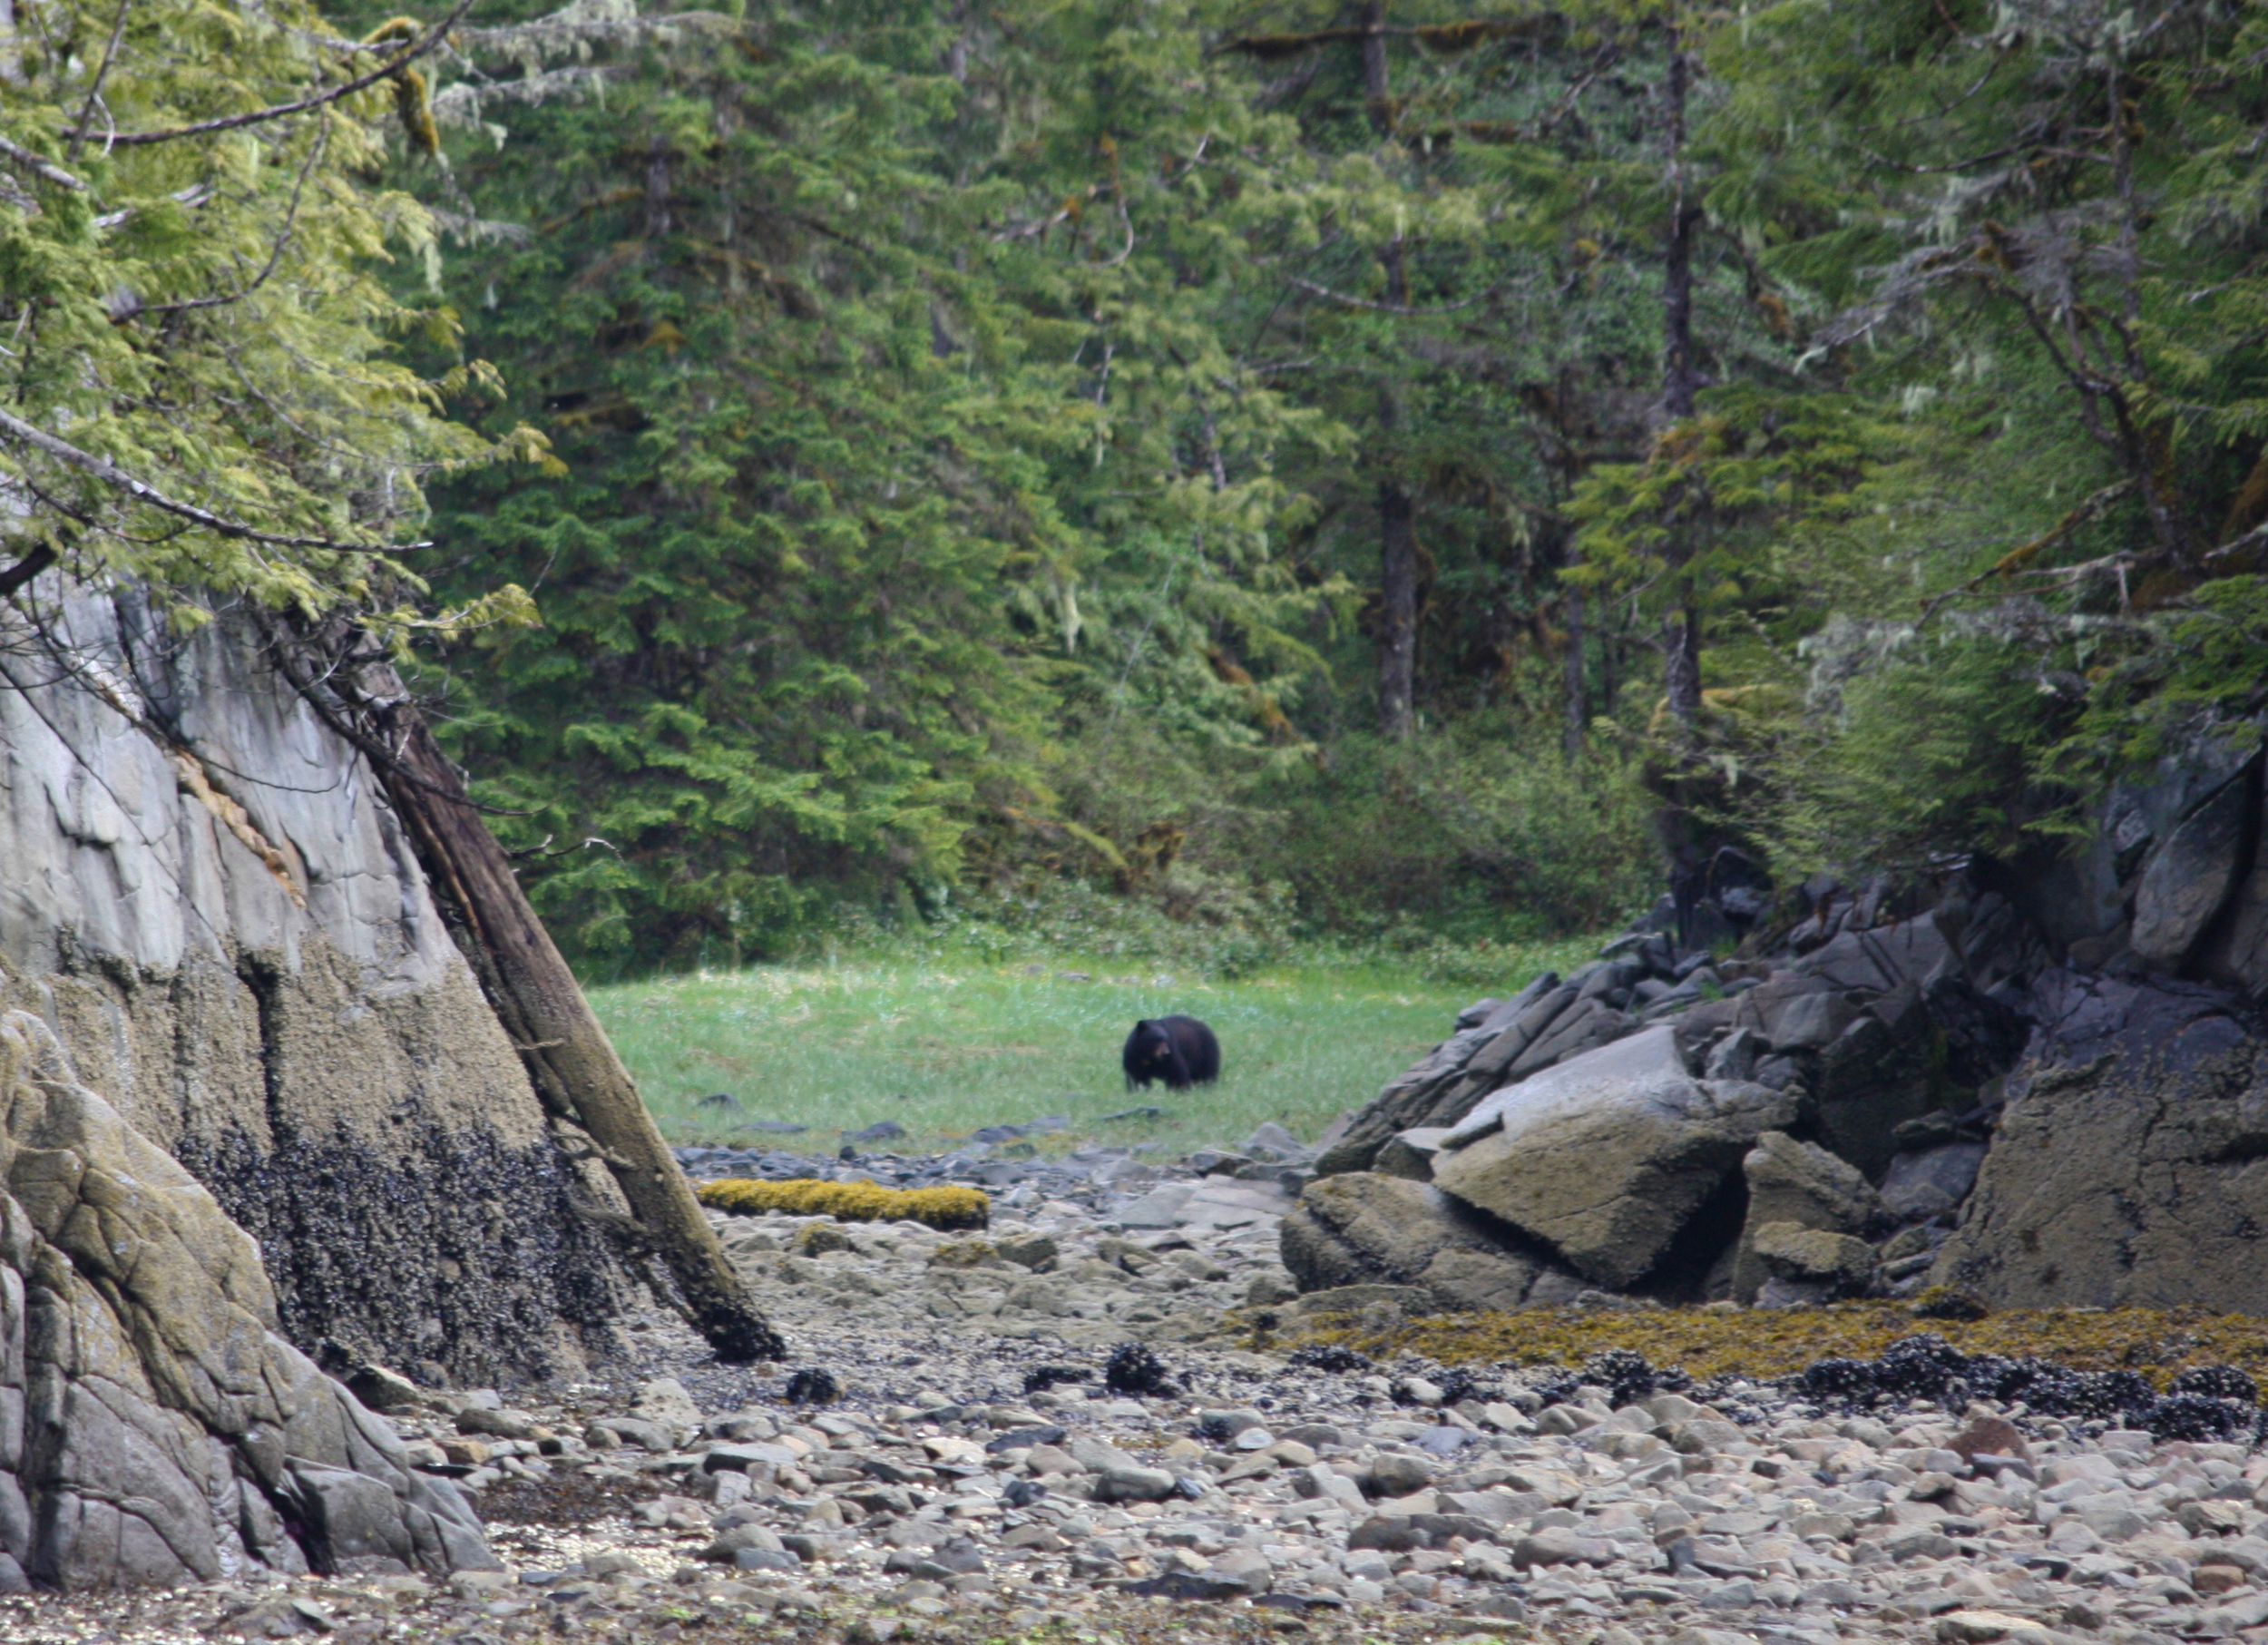 Bearnardo, made frequent appearances at the salmon stream in Orcas Cove.